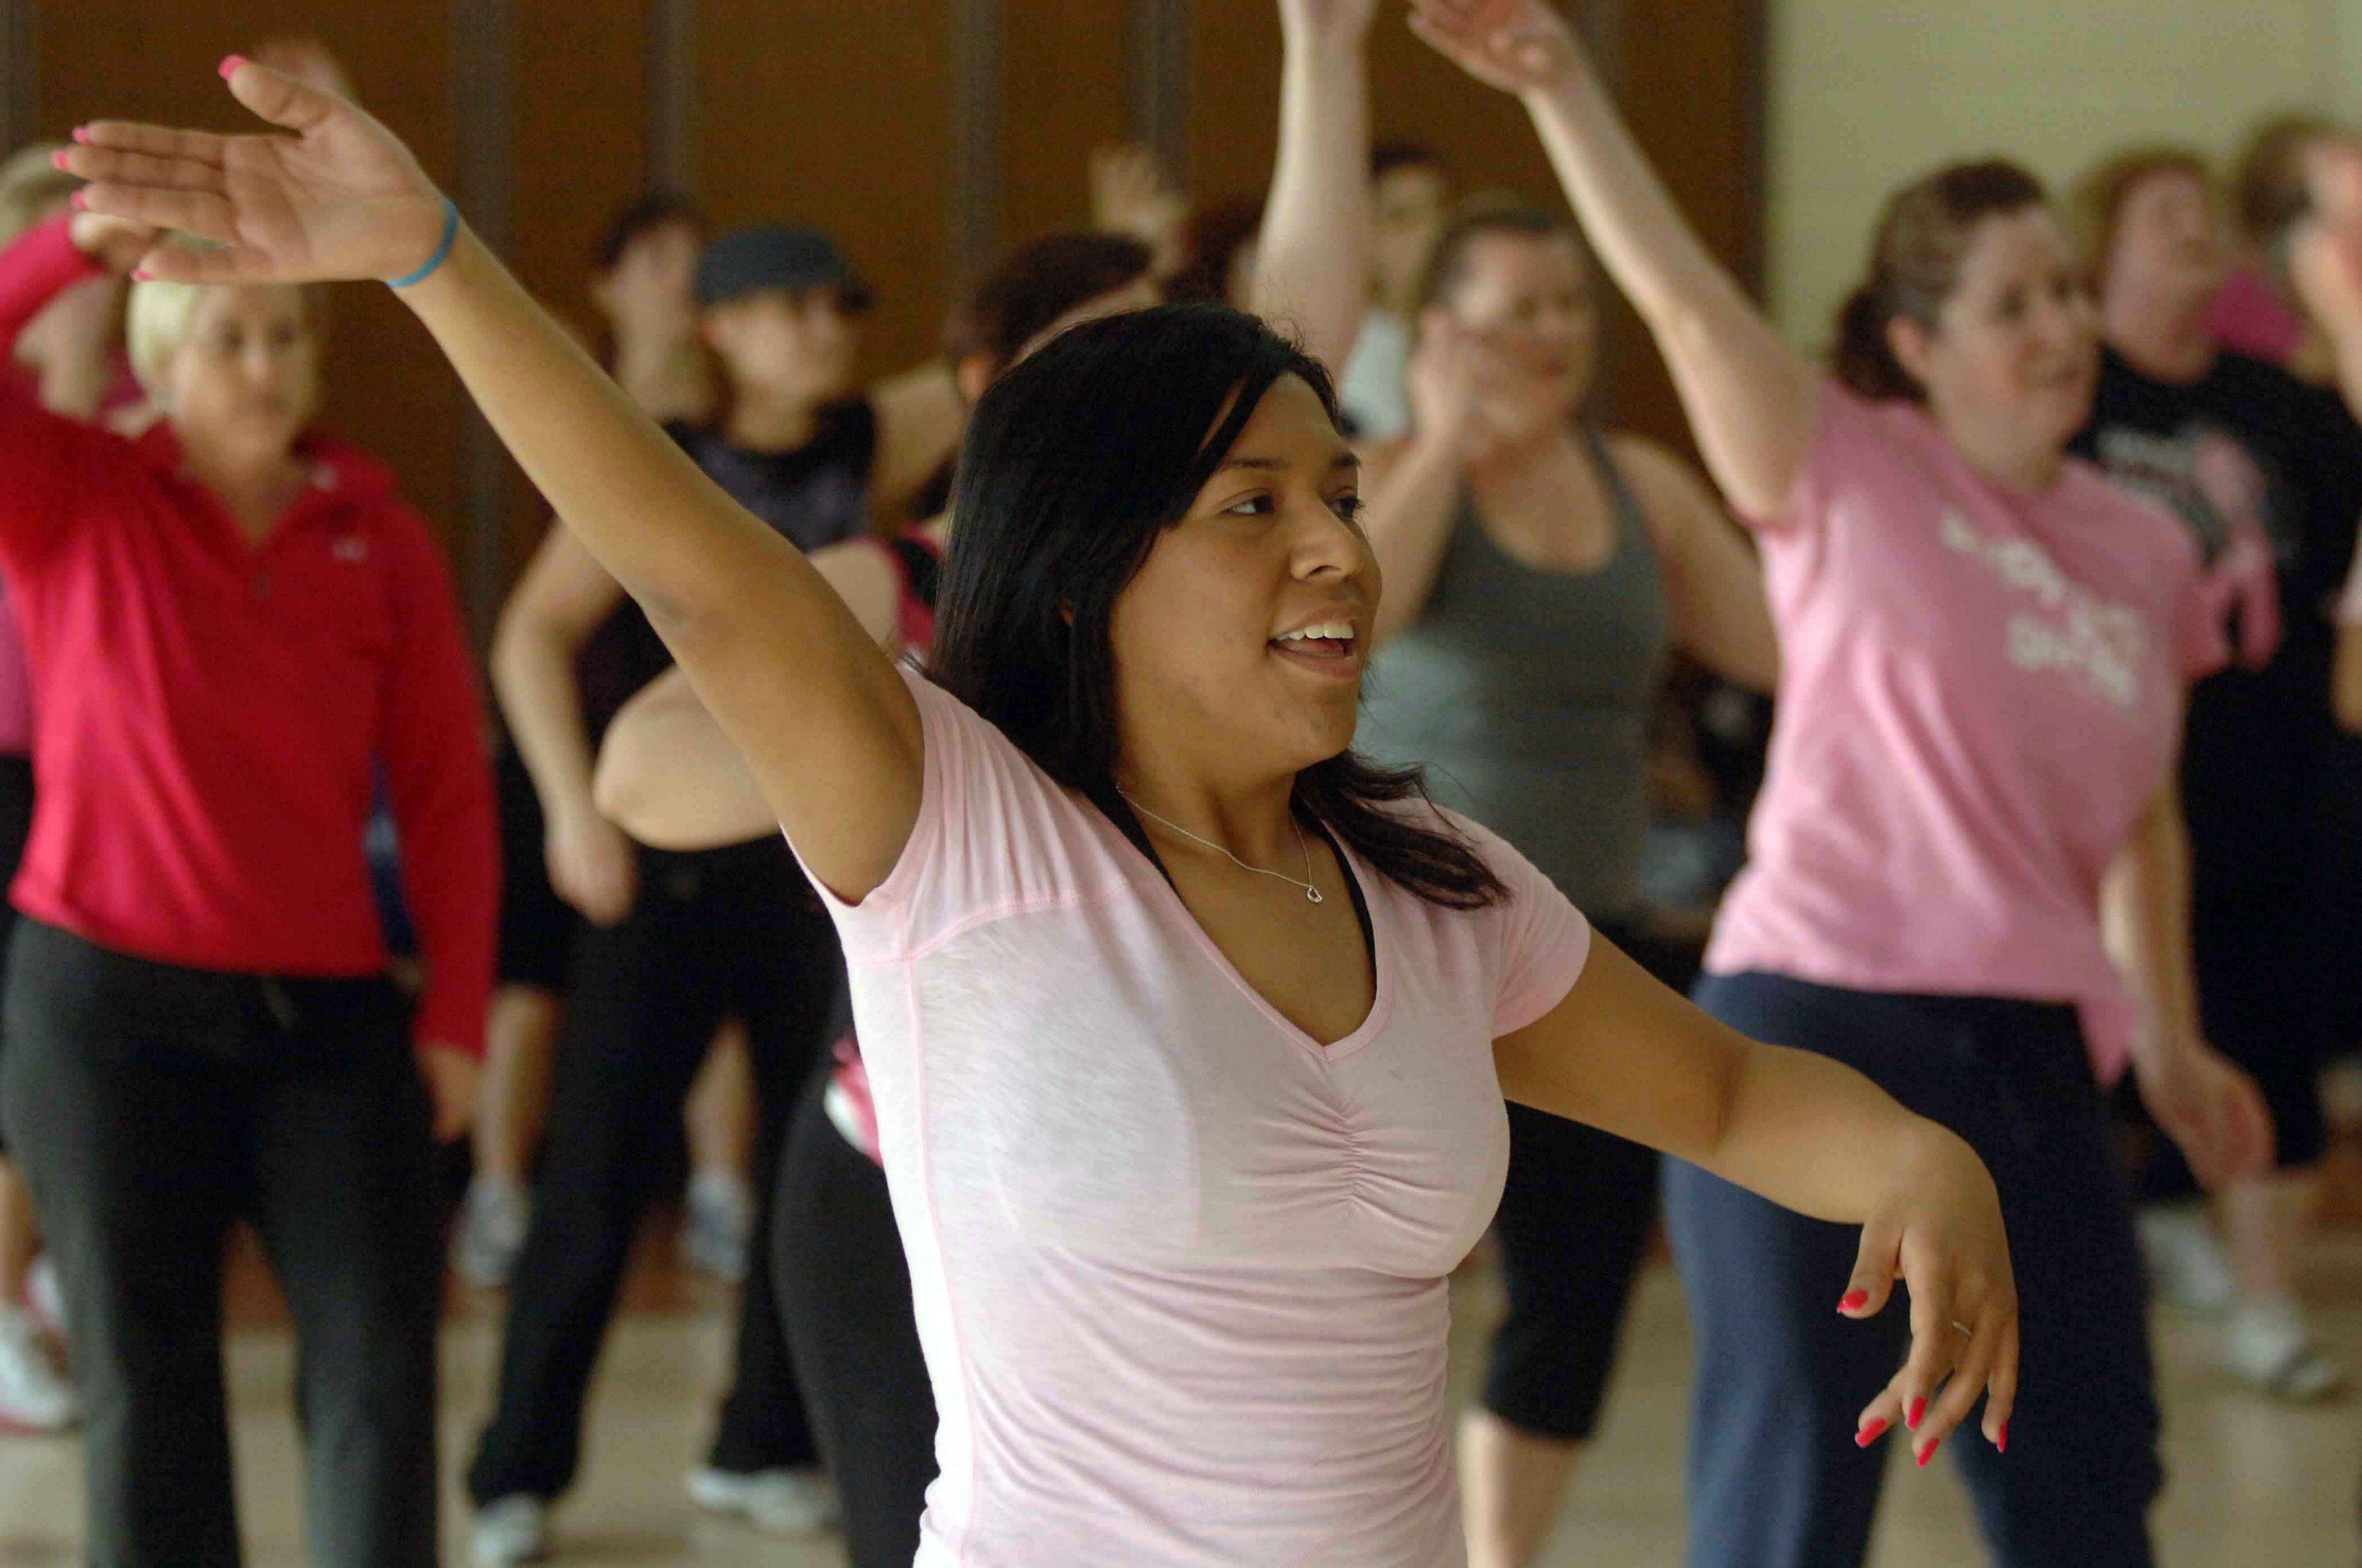 Stephanie Vazquez of Villa Park takes part in the Zumbathon to benefit the Susan G. Komen Cure to Fight Breast Cancer Saturday, held at the Iowa Community Center in Villa Park.